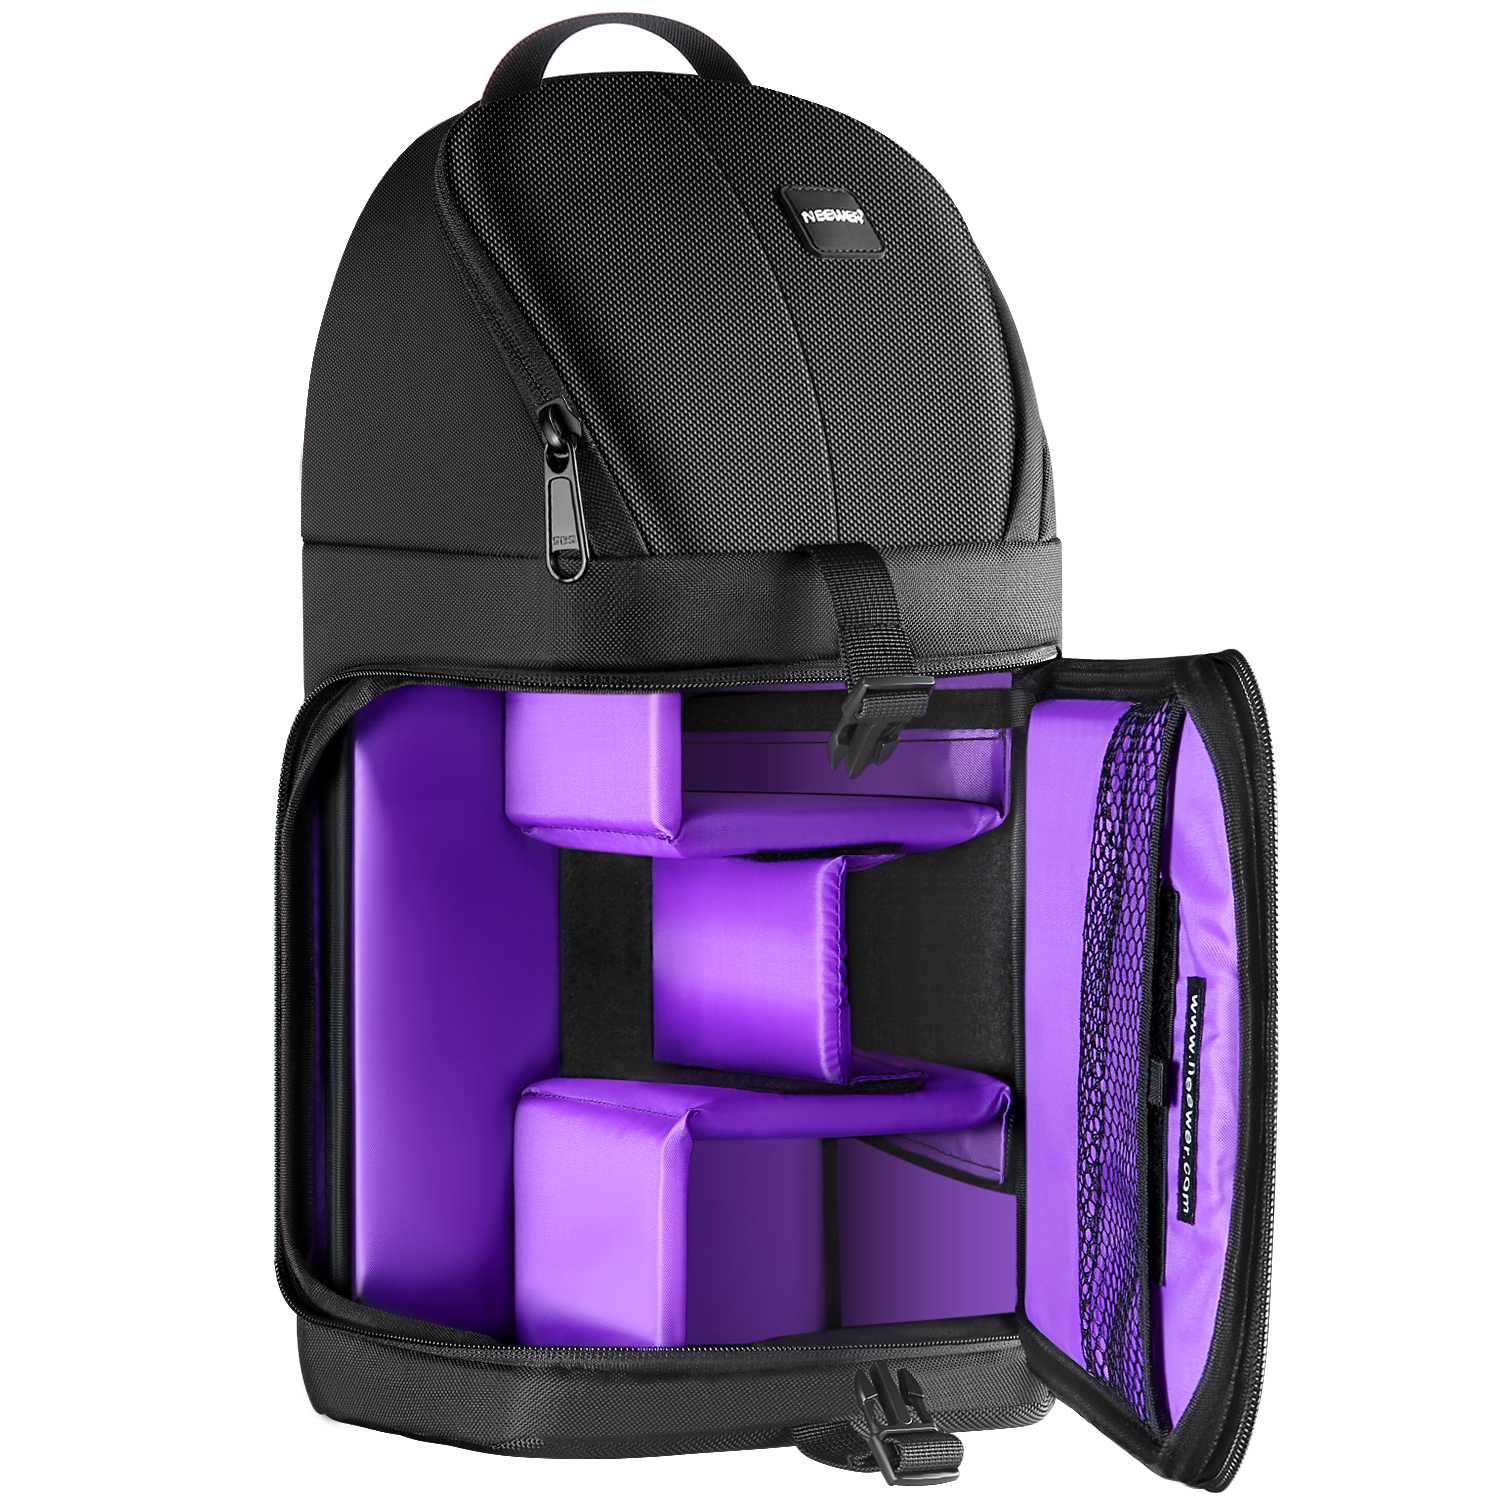 Neewer Case Backpack Storage-Bag Sling-Camera Tear-Proof Professional And Black for Carrying